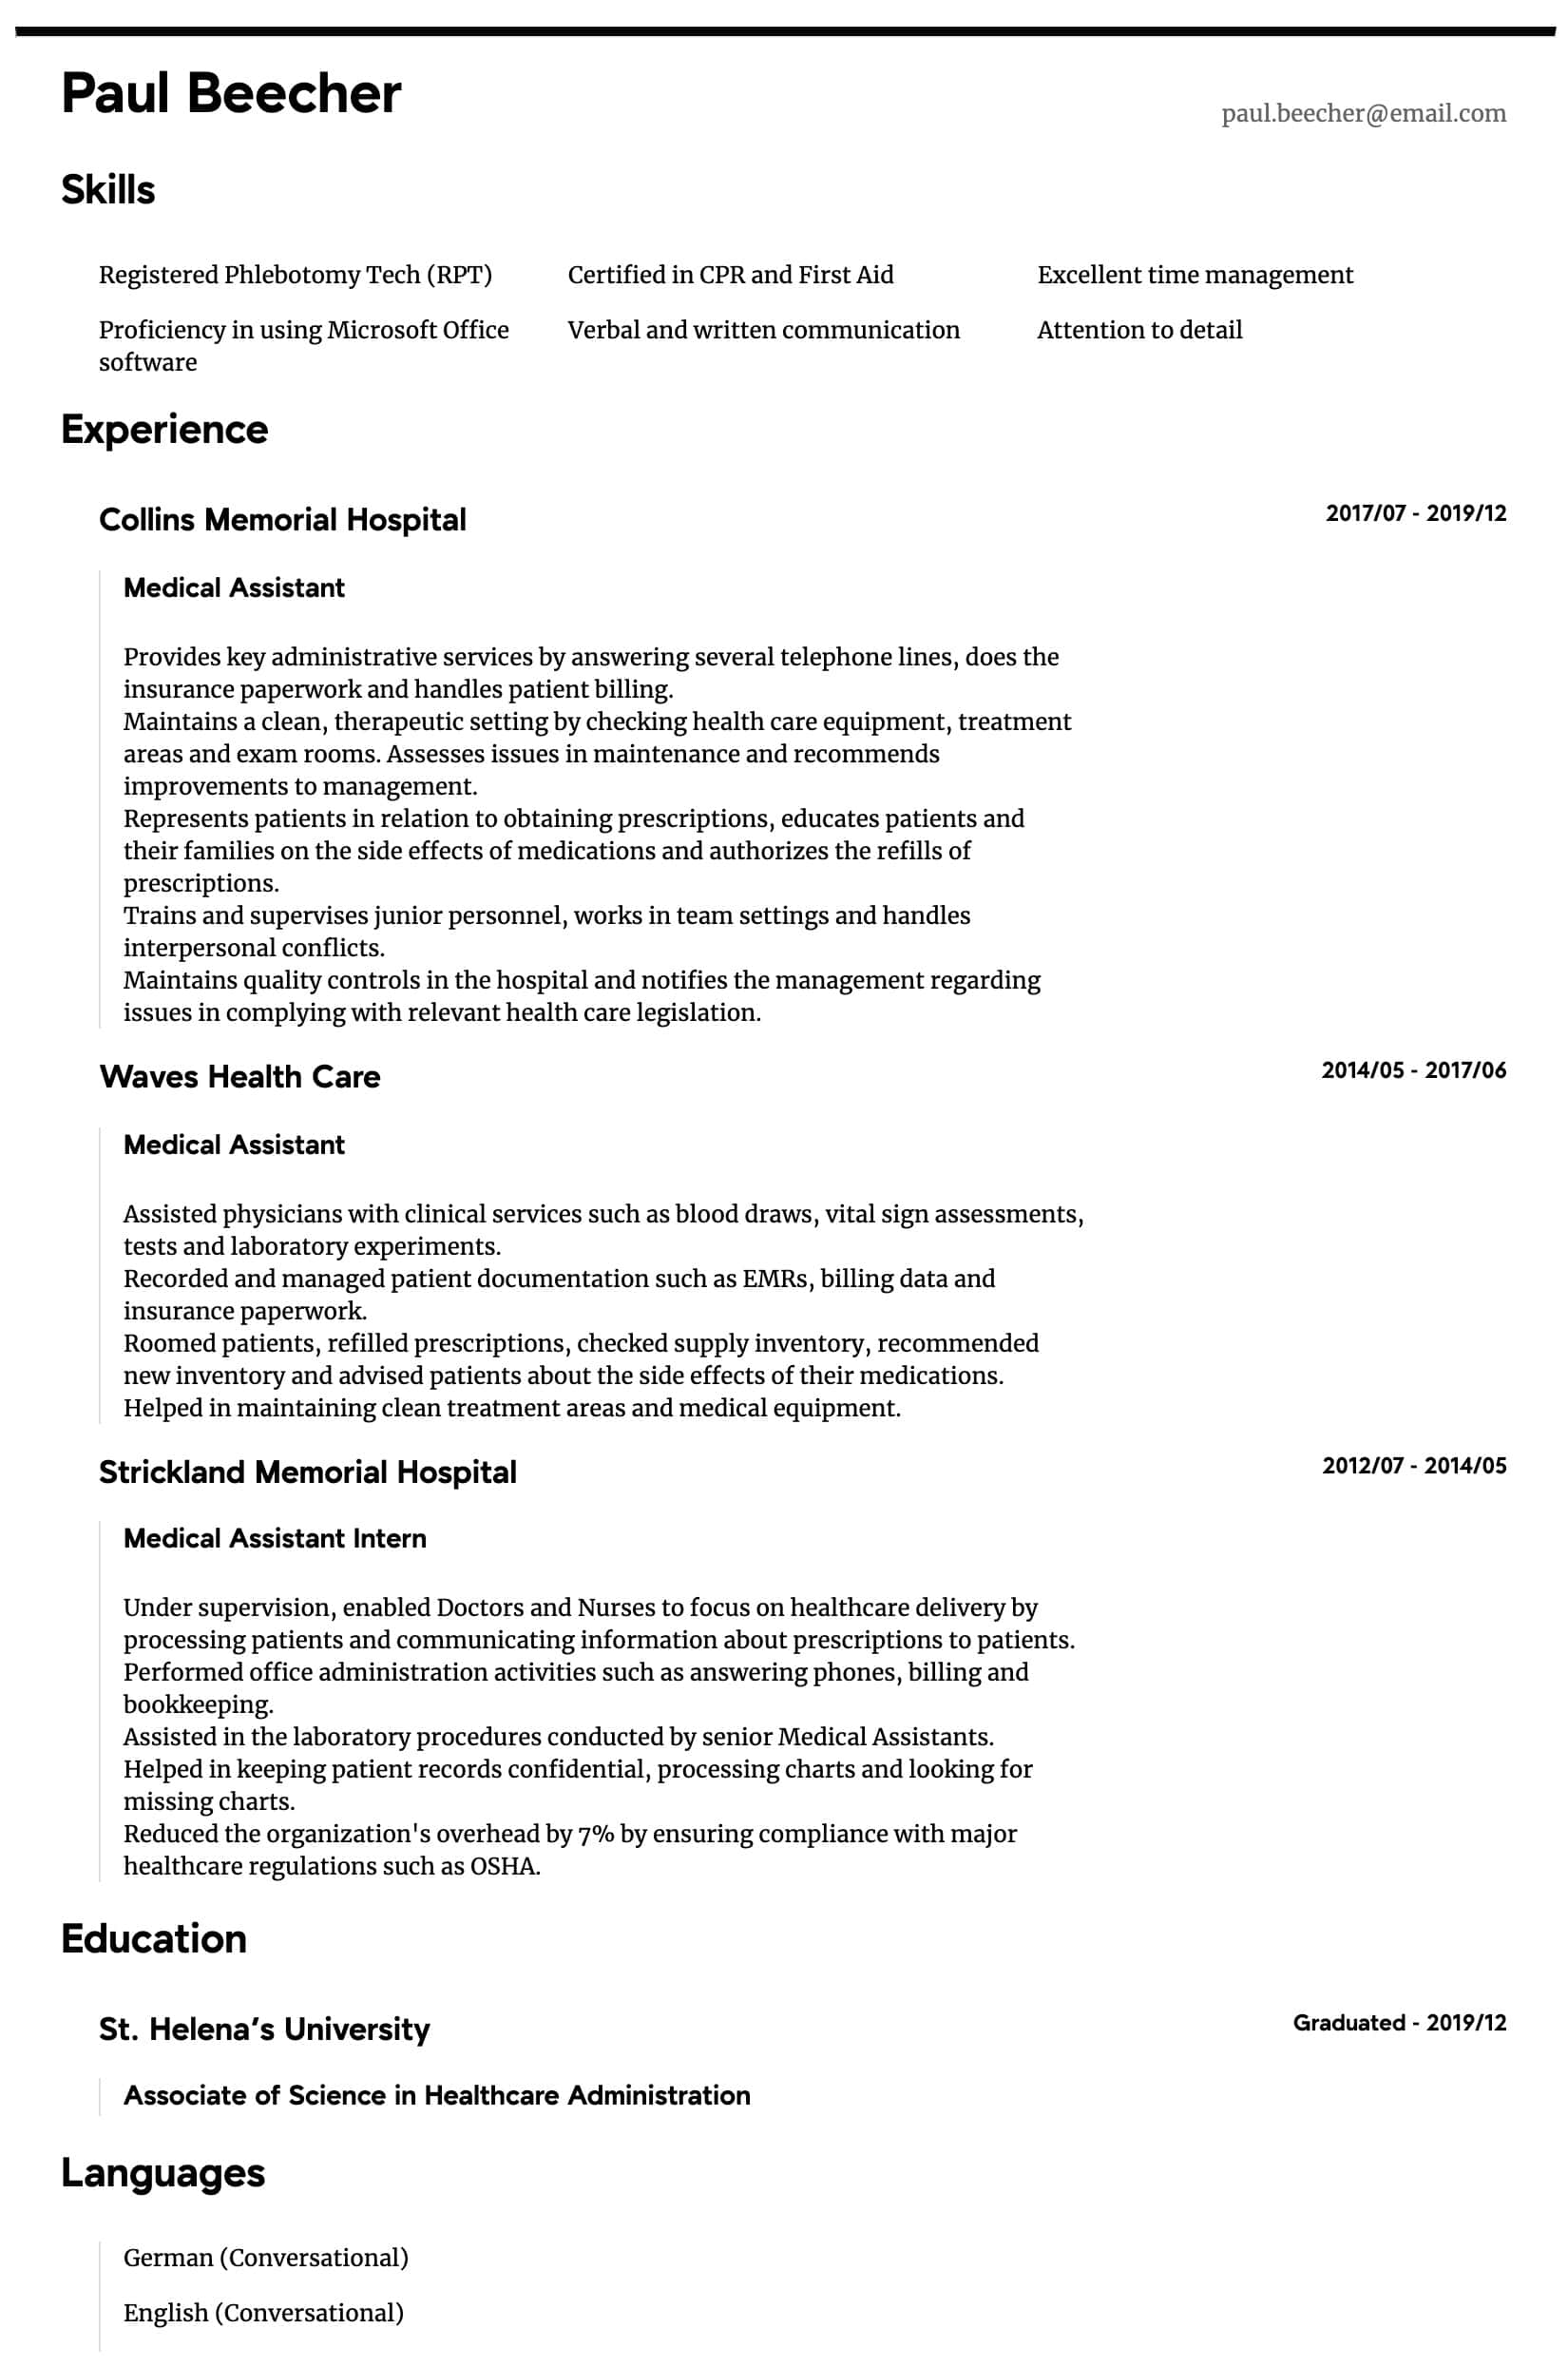 medical assistant resume samples all experience levels skills intermediate gallery robin Resume Medical Assistant Resume Skills